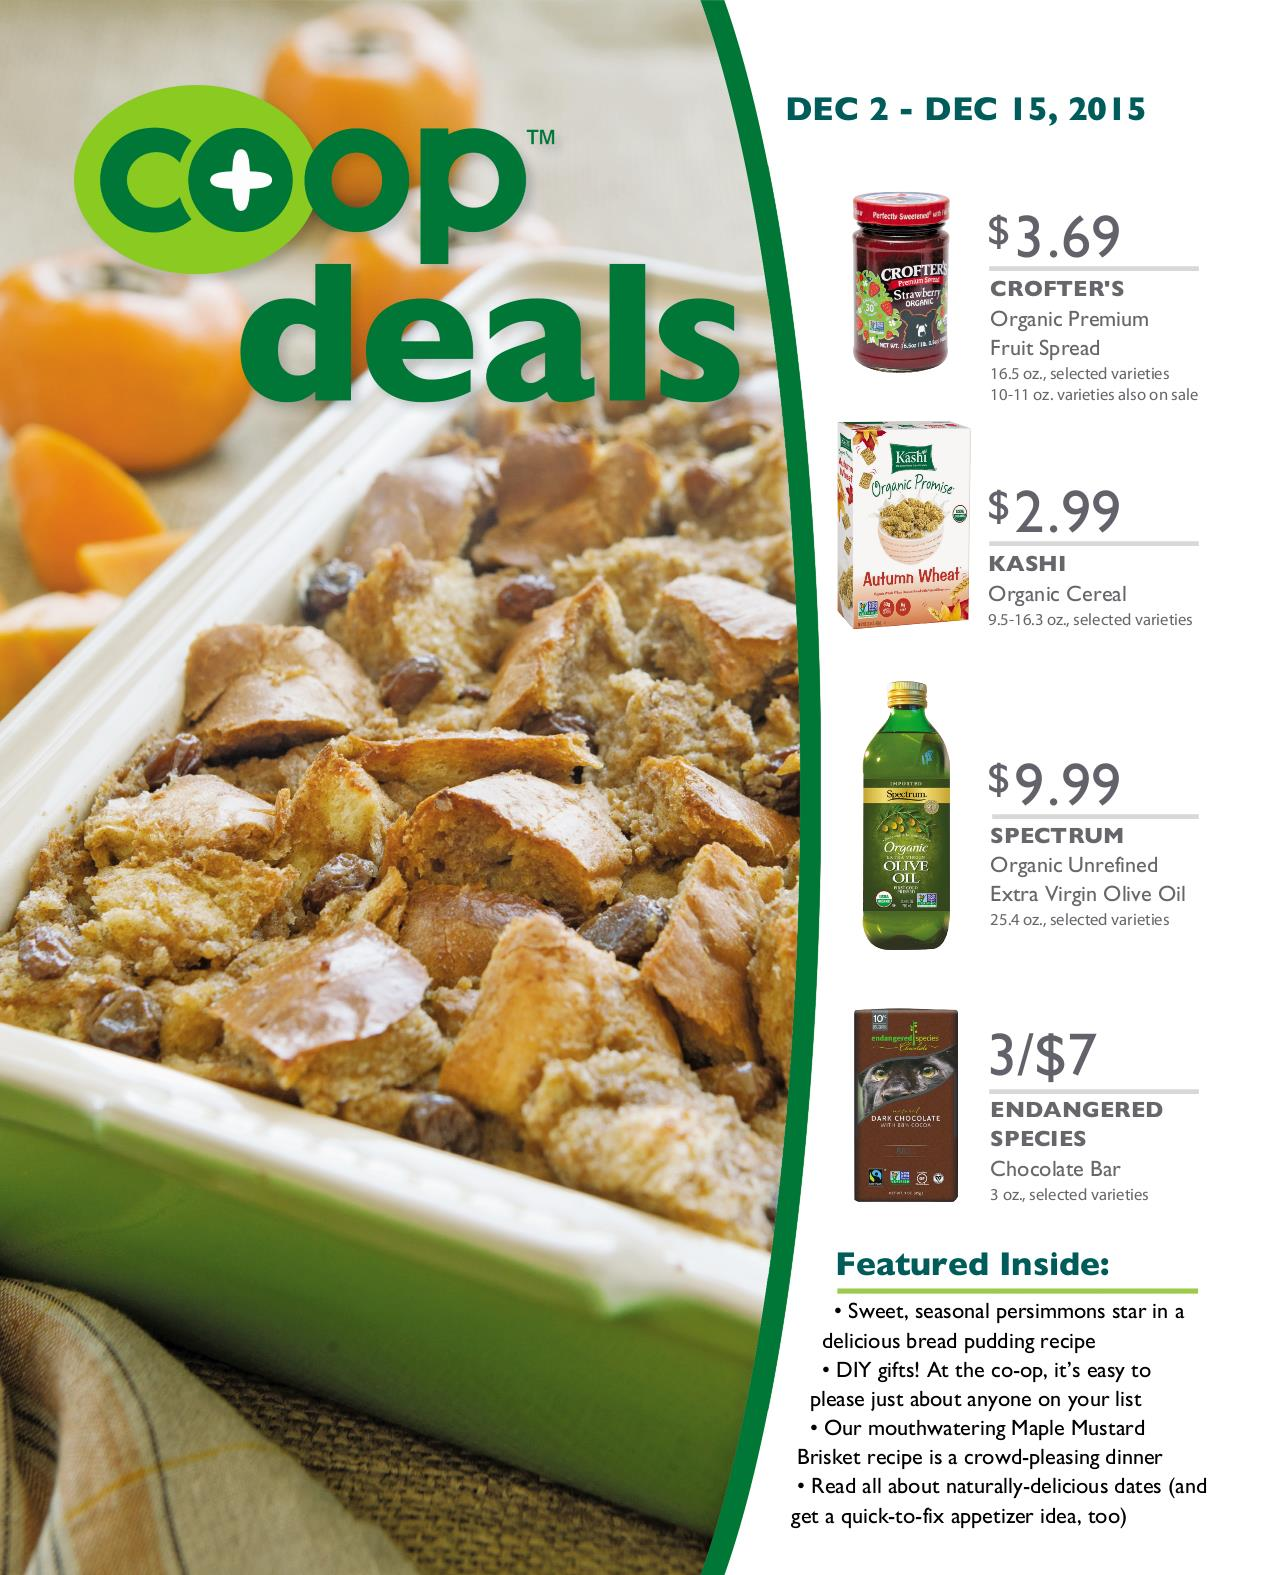 Co+op Deals Cycle A